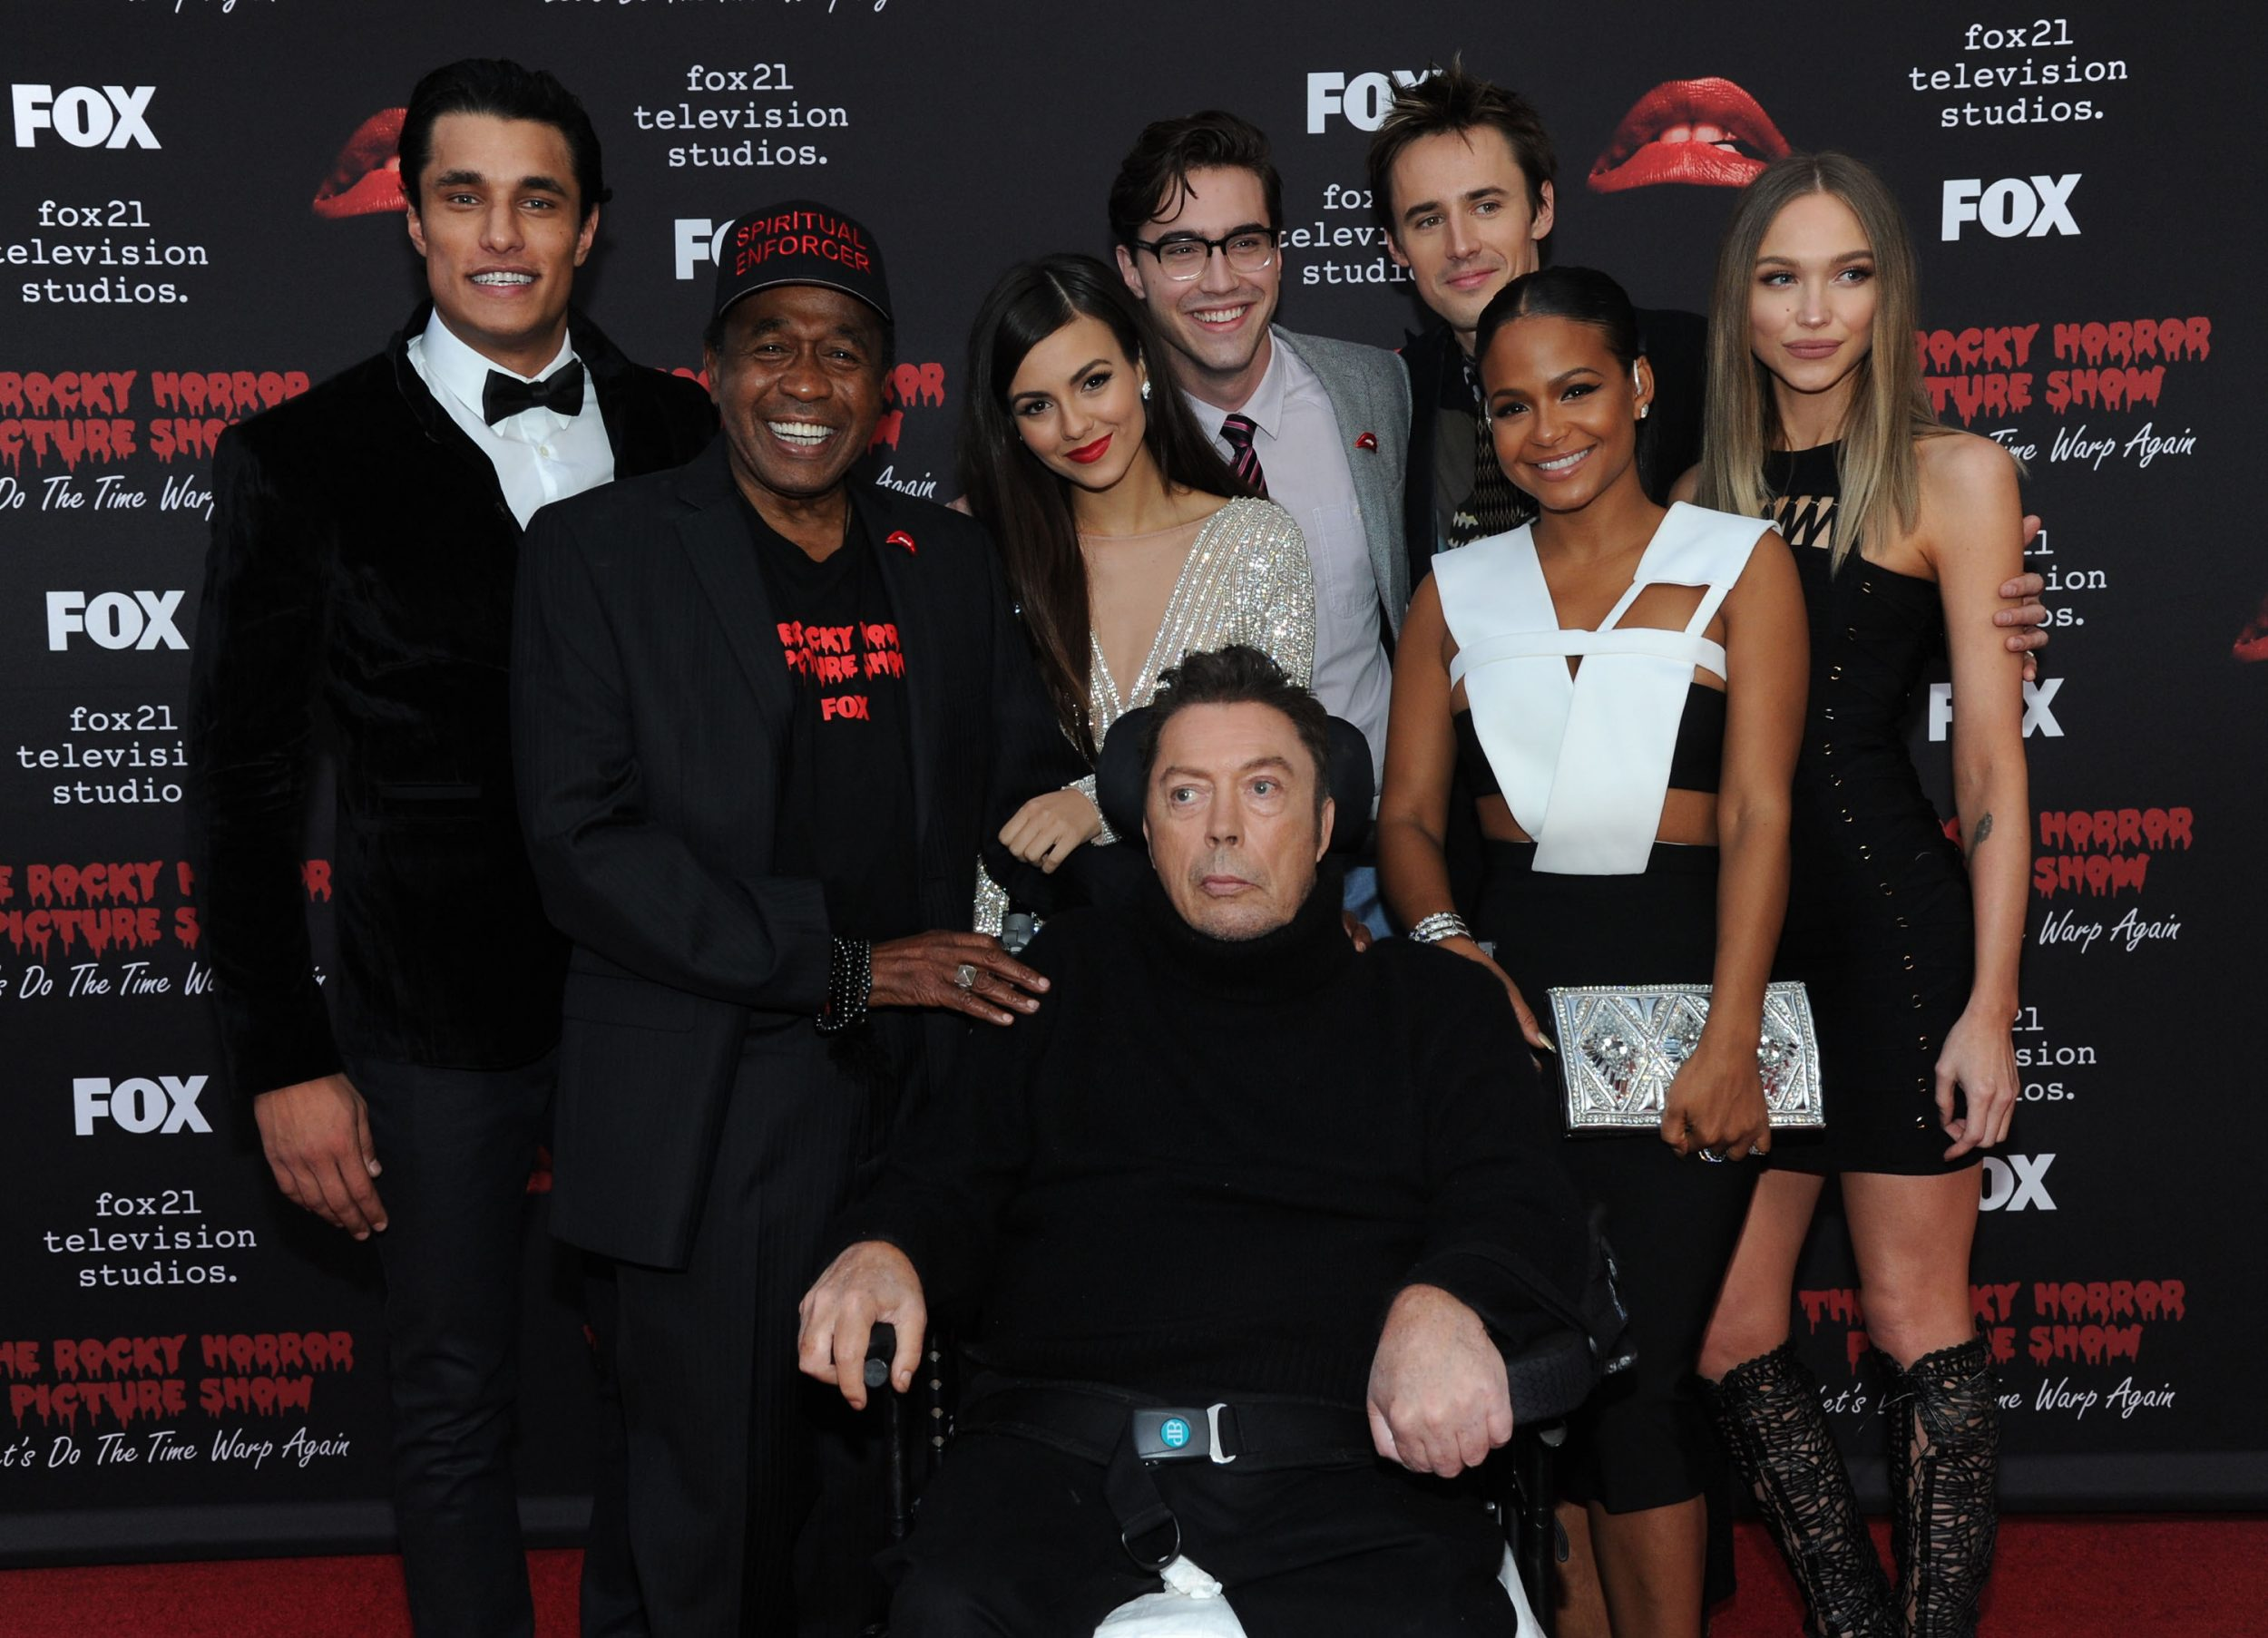 THE ROCKY HORROR PICTURE SHOW: Let's Do The Time Warp Again (and Transylvanians!): L-R: Cast members Staz Nair, Ben Vereen, Victoria Justice, Tim Curry, Ryan McCartan, Reeve Carney, Christina Milian and Ivy Levan arrive at THE ROCKY HORROR PICTURE SHOW: Let's Do The Time Warp Again (and Transylvanians!) premiere party red carpet at The Roxy on Thursday, Oct. 13, in Los Angeles, CA. THE ROCKY HORROR PICTURE SHOW: Let's Do The Time Warp Again (And Transylvanians!) premieres Thursday, Oct. 20 (8:00-10:00 PM ET/PT) on FOX. © 2016 FOX BROADCASTING CR: Richard Shotwell/FOX